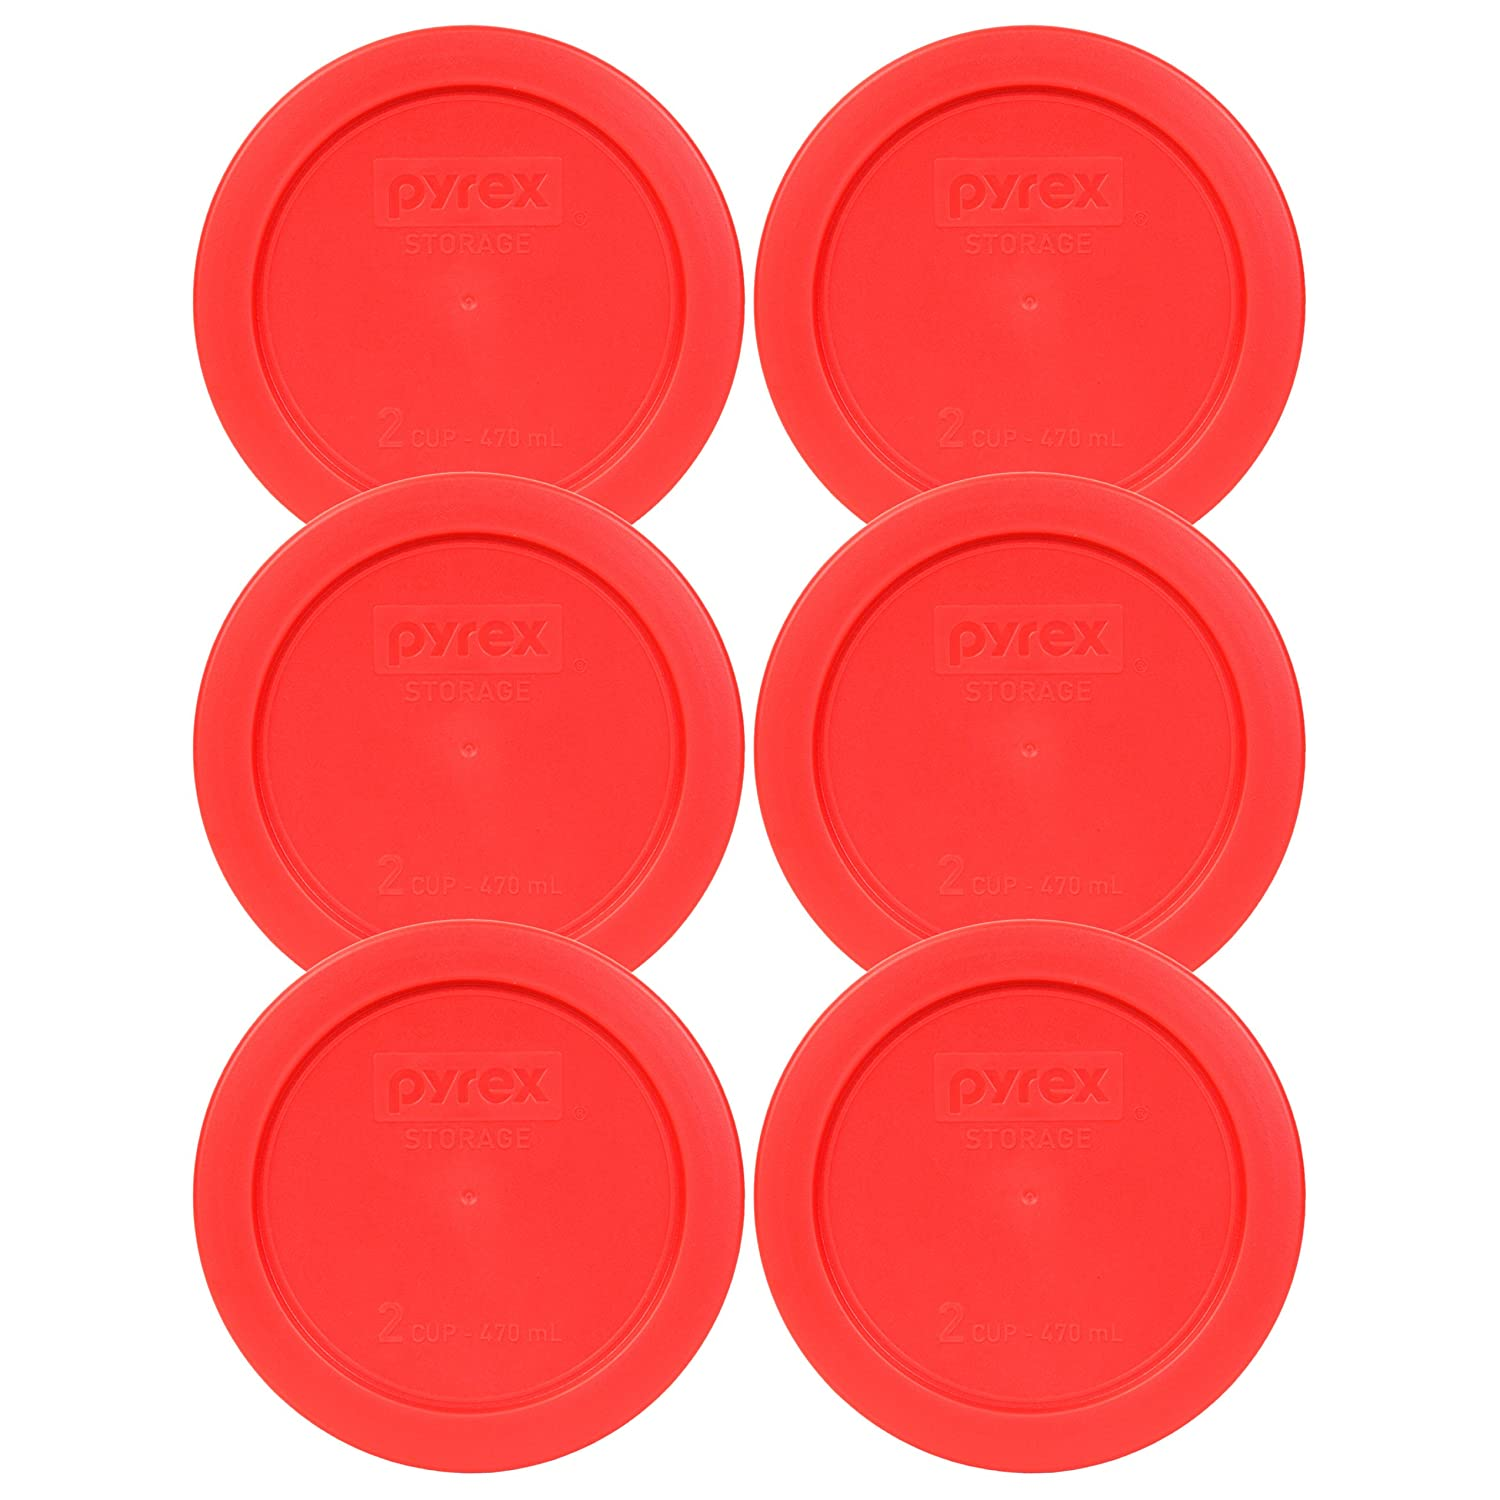 Pyrex 7200 Pc Red Round 2 Cup Storage Lid For Glass Bowl